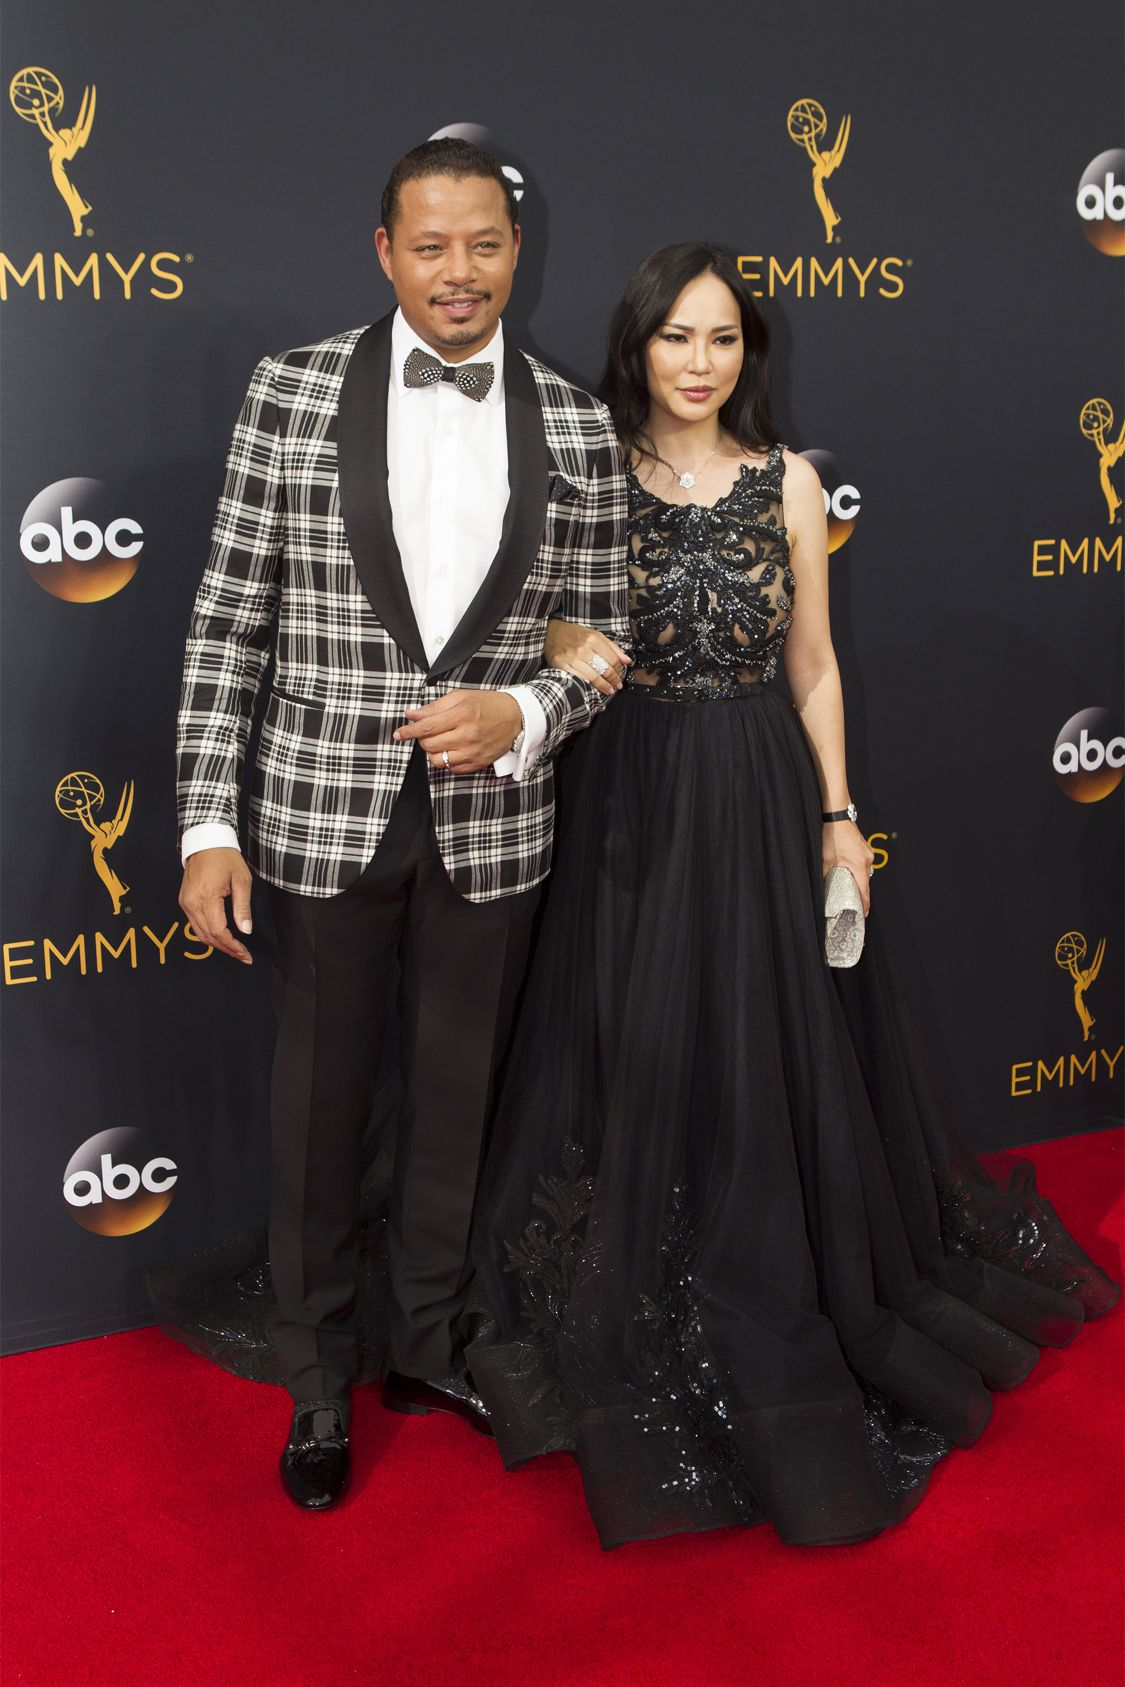 """THE 68TH EMMY(r) AWARDS - """"The 68th Emmy Awards"""" broadcasts live from The Microsoft Theater in Los Angeles, Sunday, September 18 (7:00-11:00 p.m. EDT/4:00-8:00 p.m. PDT), on ABC and is hosted by Jimmy Kimmel. (ABC/Rick Rowell) TERRENCE HOWARD"""